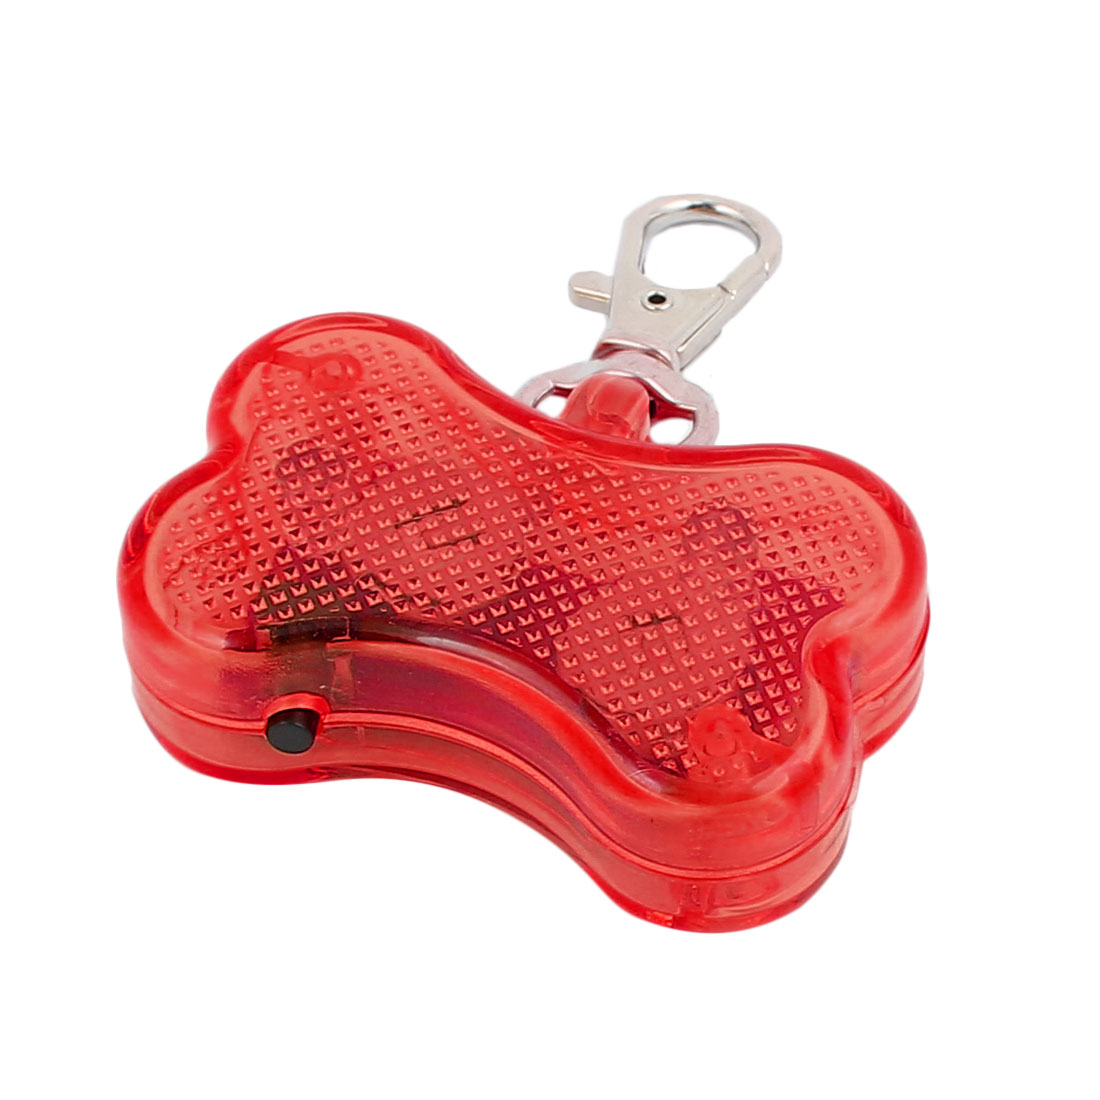 Red LED Light Bone Shape Pet Dog Blinker Flashing Safety Pendant Collar Gift - image 4 of 4